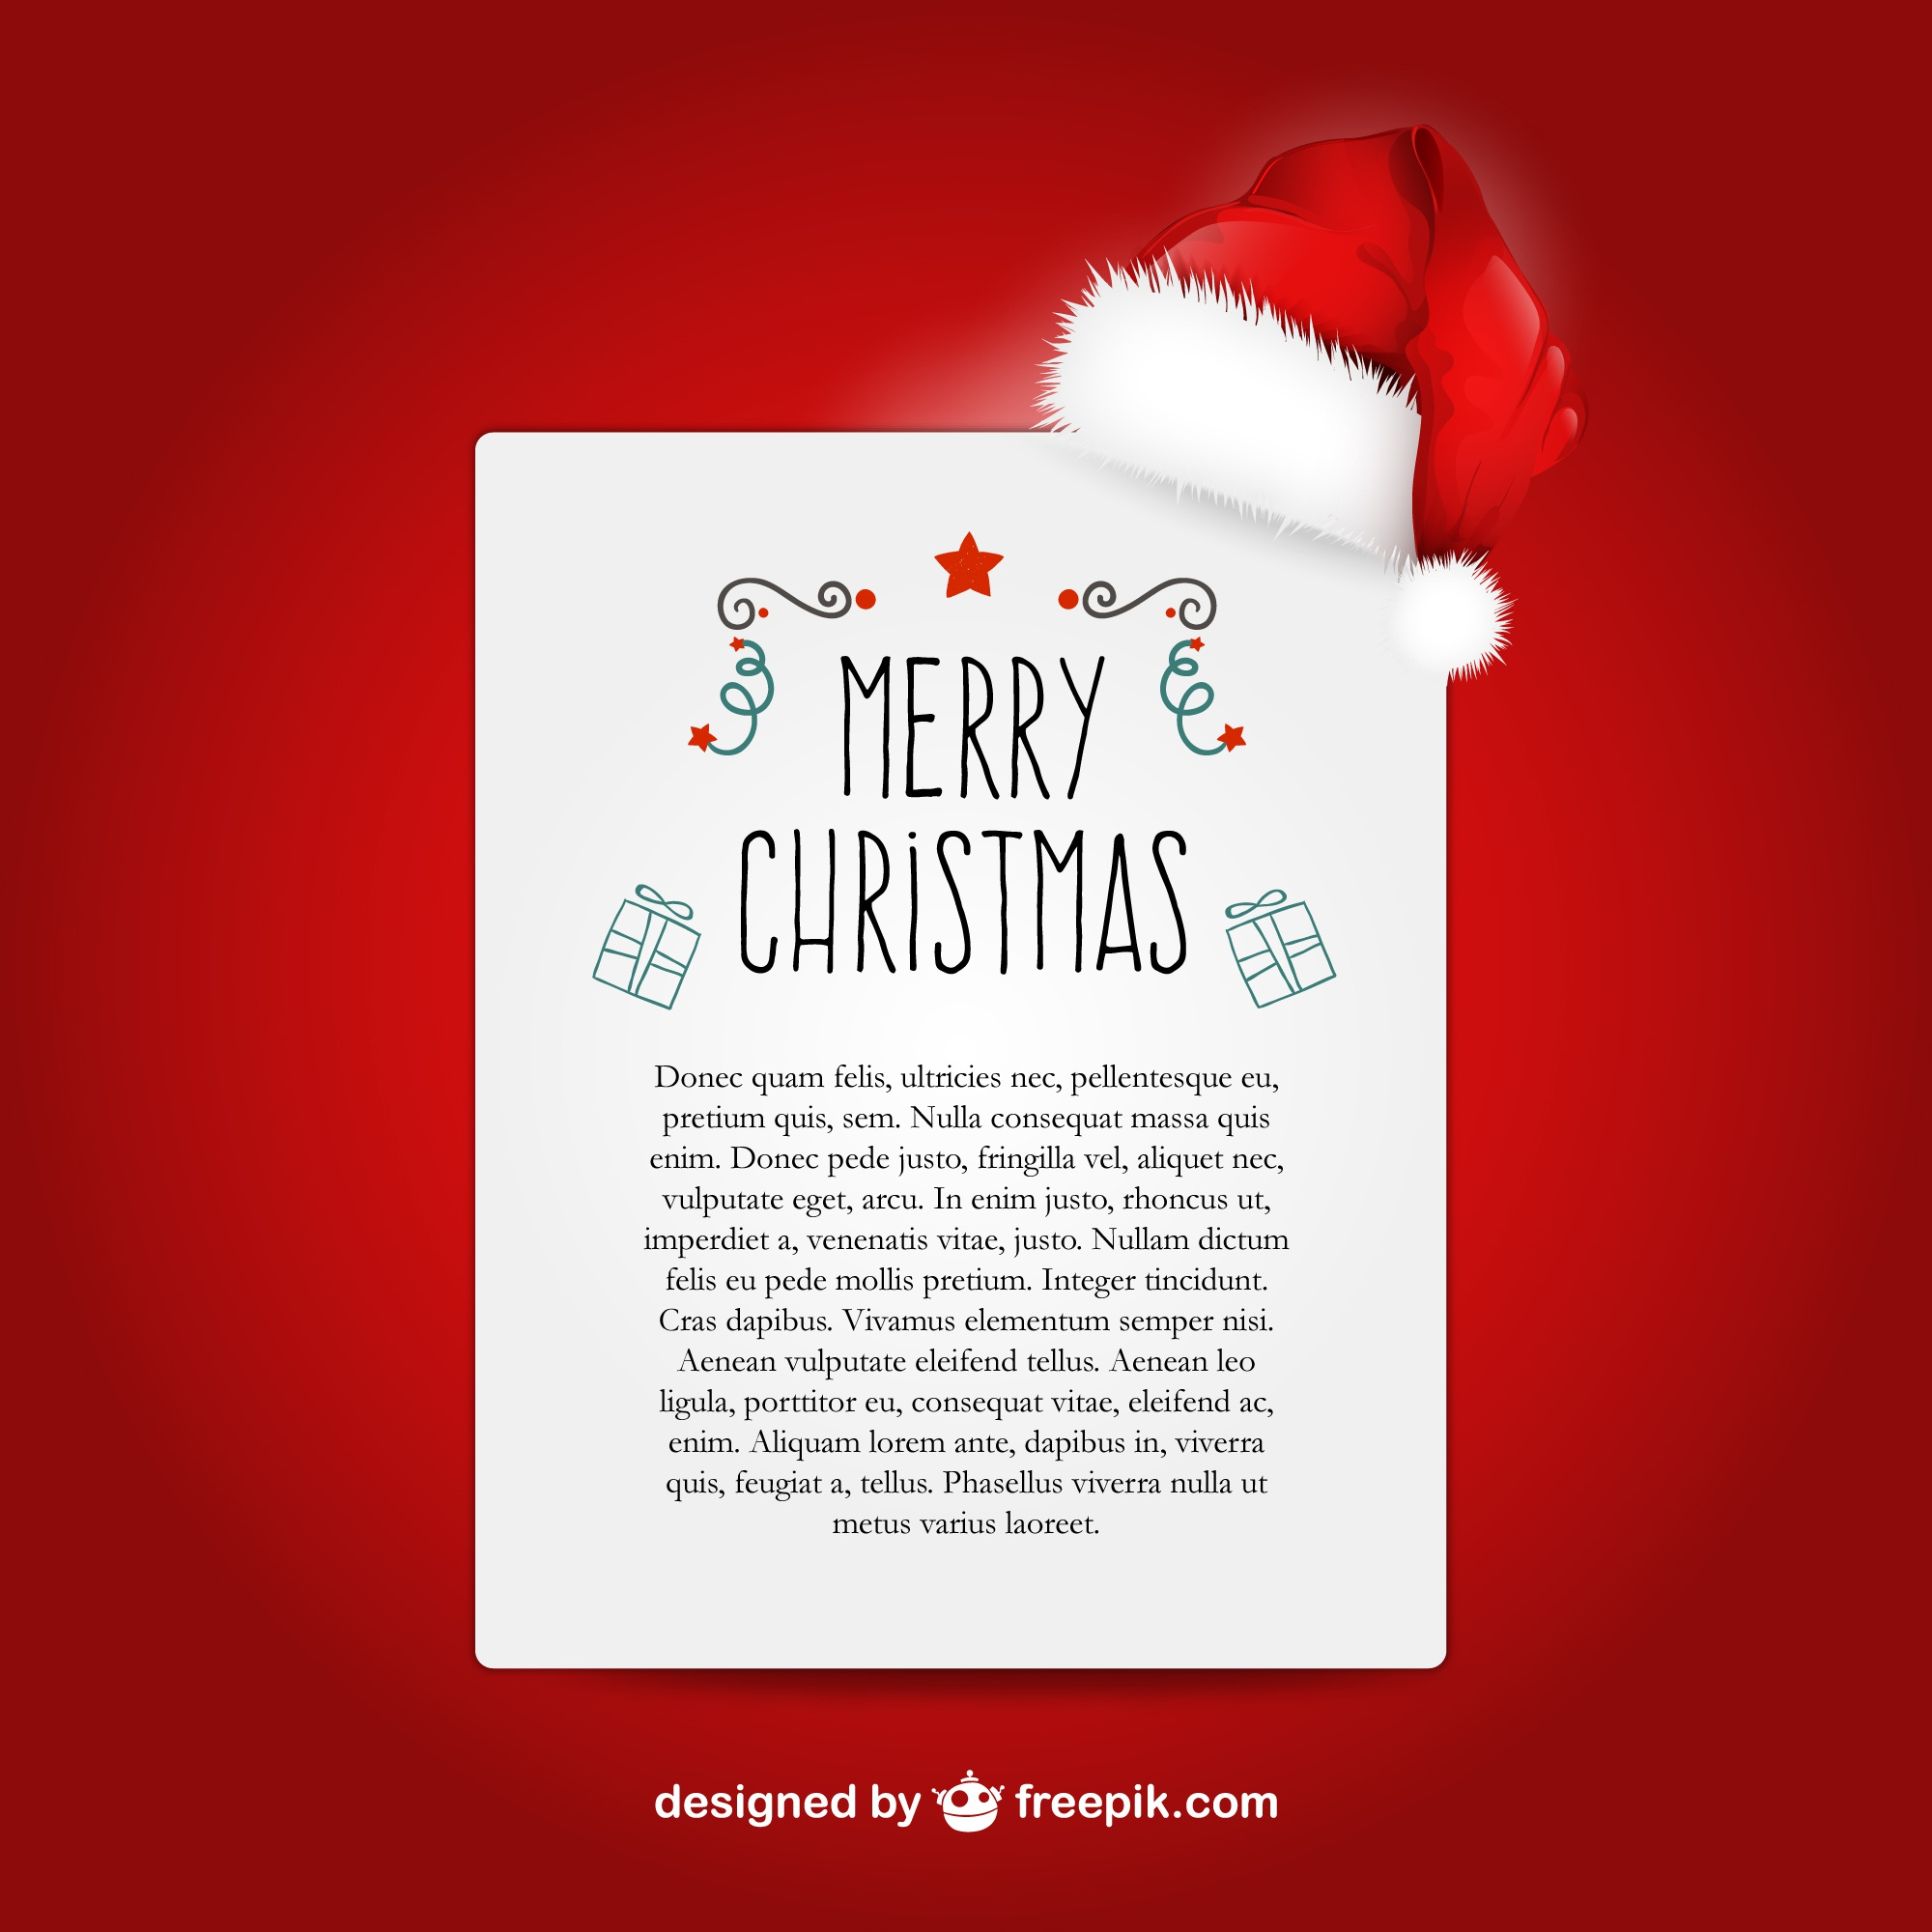 ... 338 jpeg 27kB, Search Results for: Free Blank Santa Template/page/2